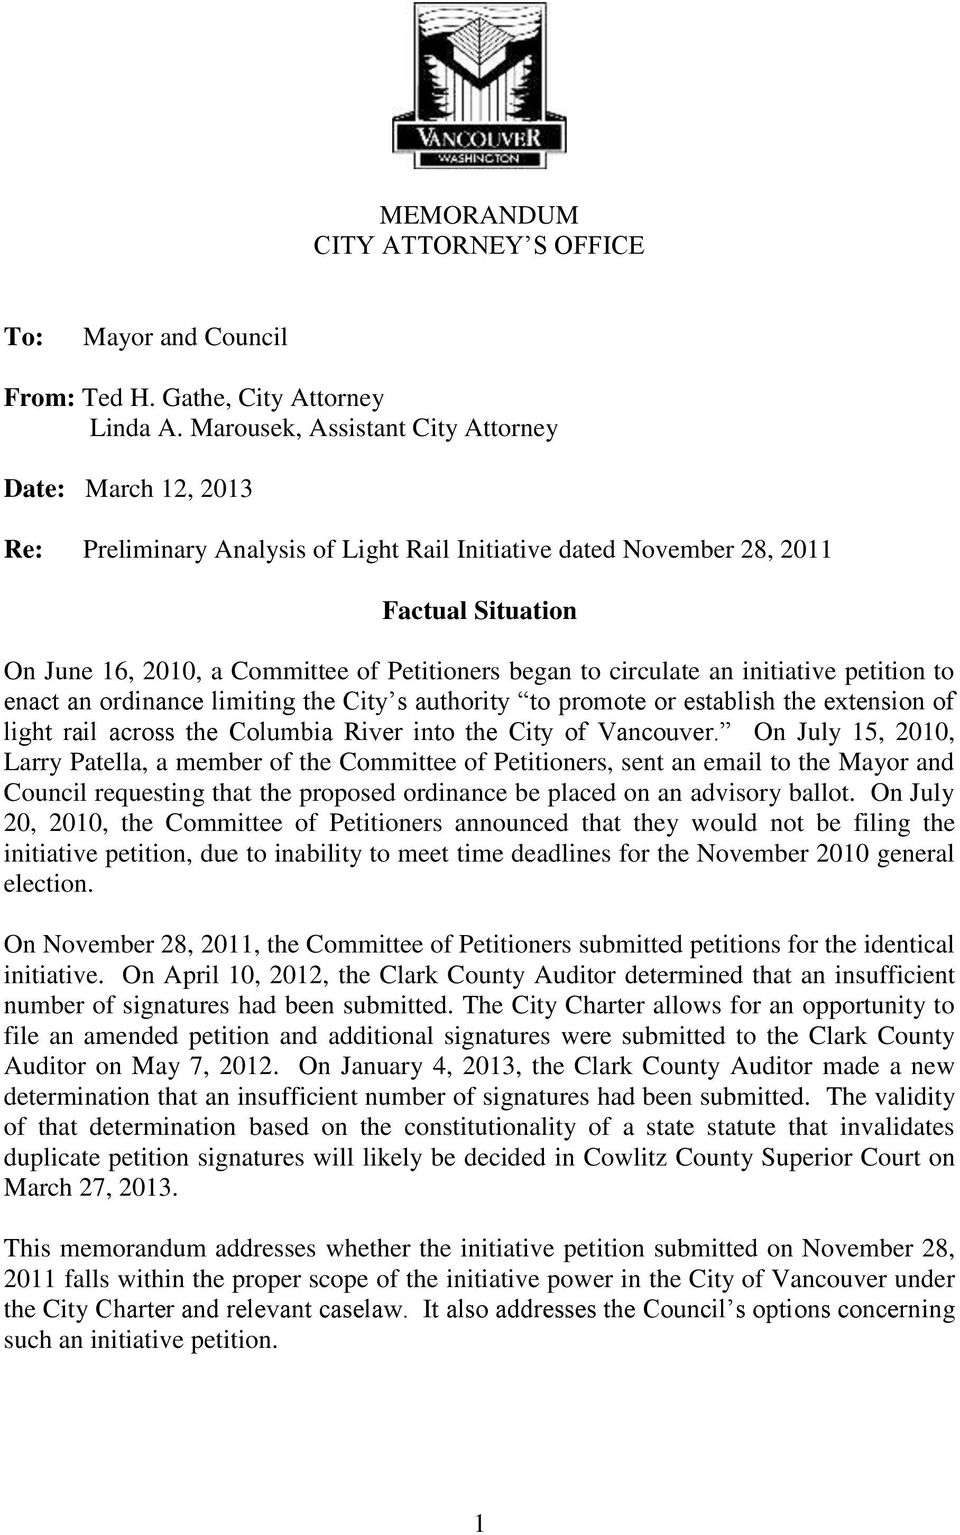 to circulate an initiative petition to enact an ordinance limiting the City s authority to promote or establish the extension of light rail across the Columbia River into the City of Vancouver.